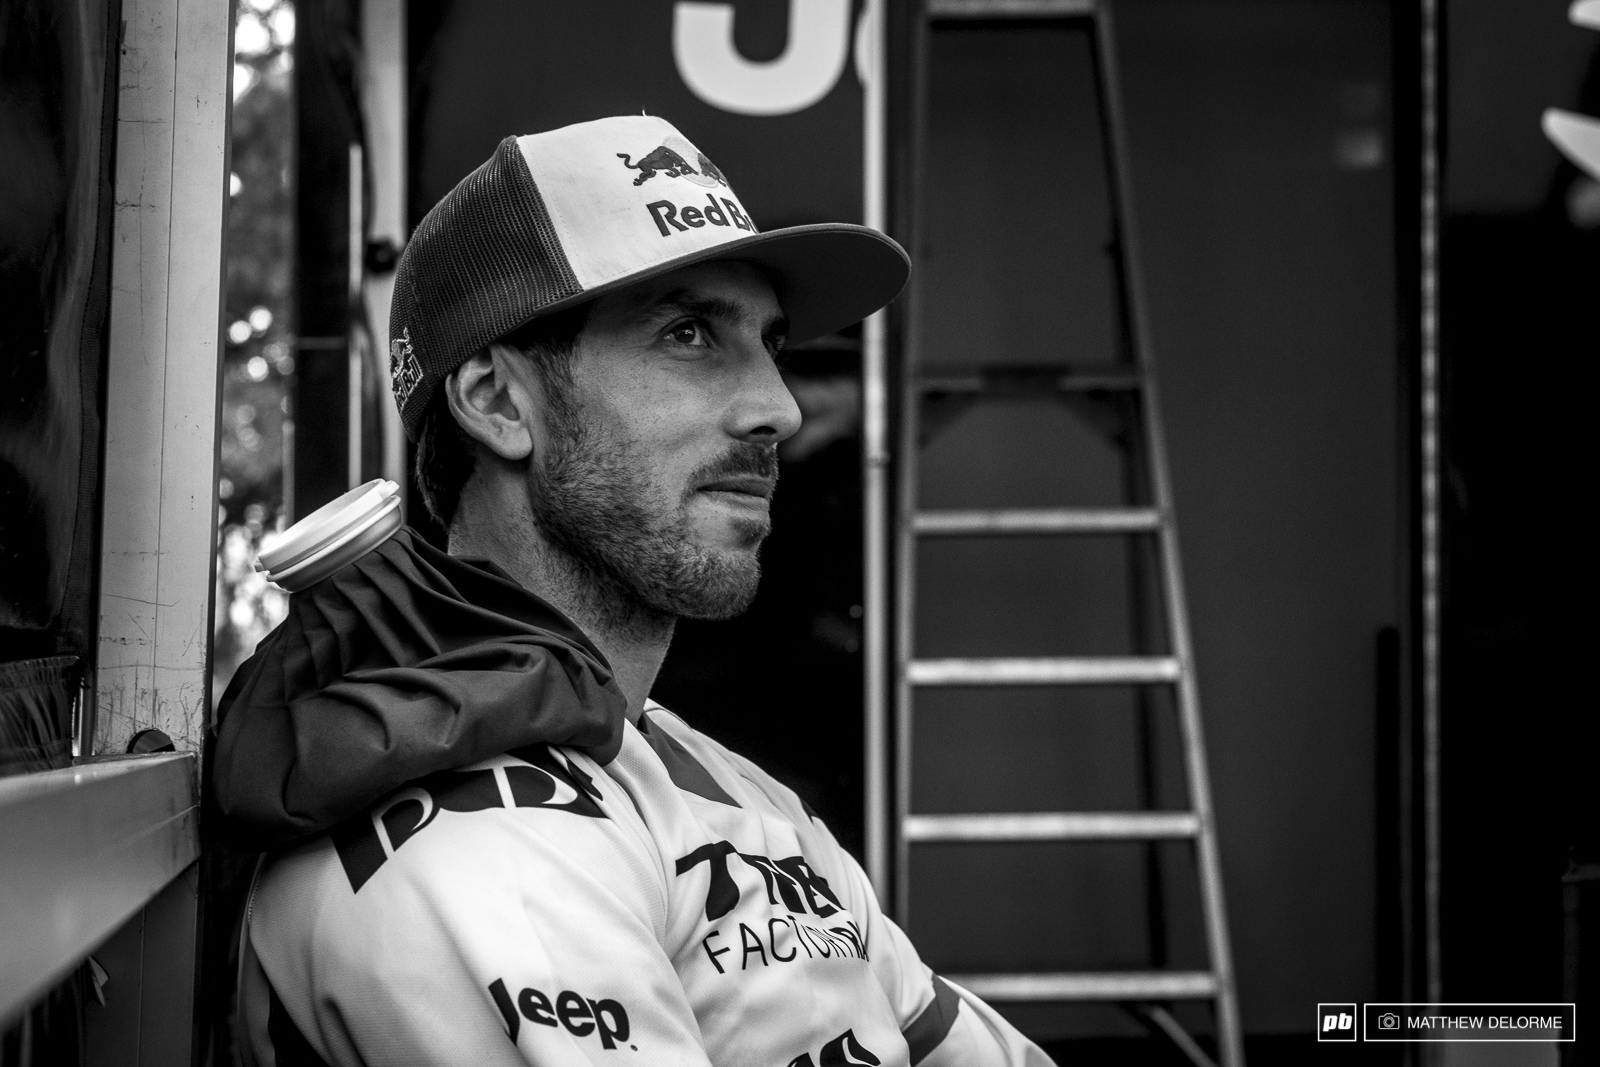 It was a tough choice for Gee to decide if he should race today and risk further injury to his shoulder. In the end he clenched his teeth and gave it his best.